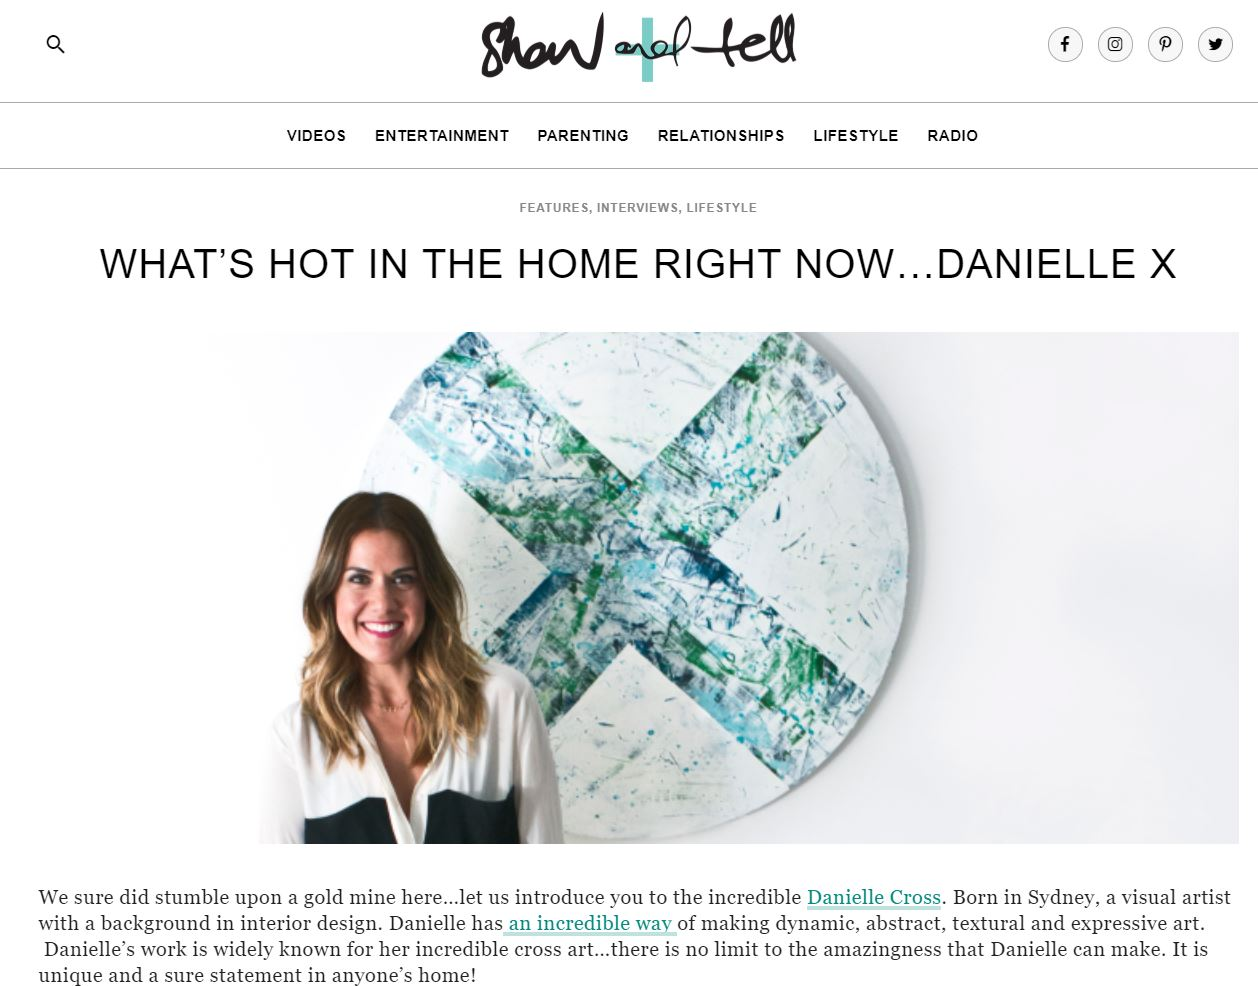 What's hot in the home right now - Danielle X.jpg